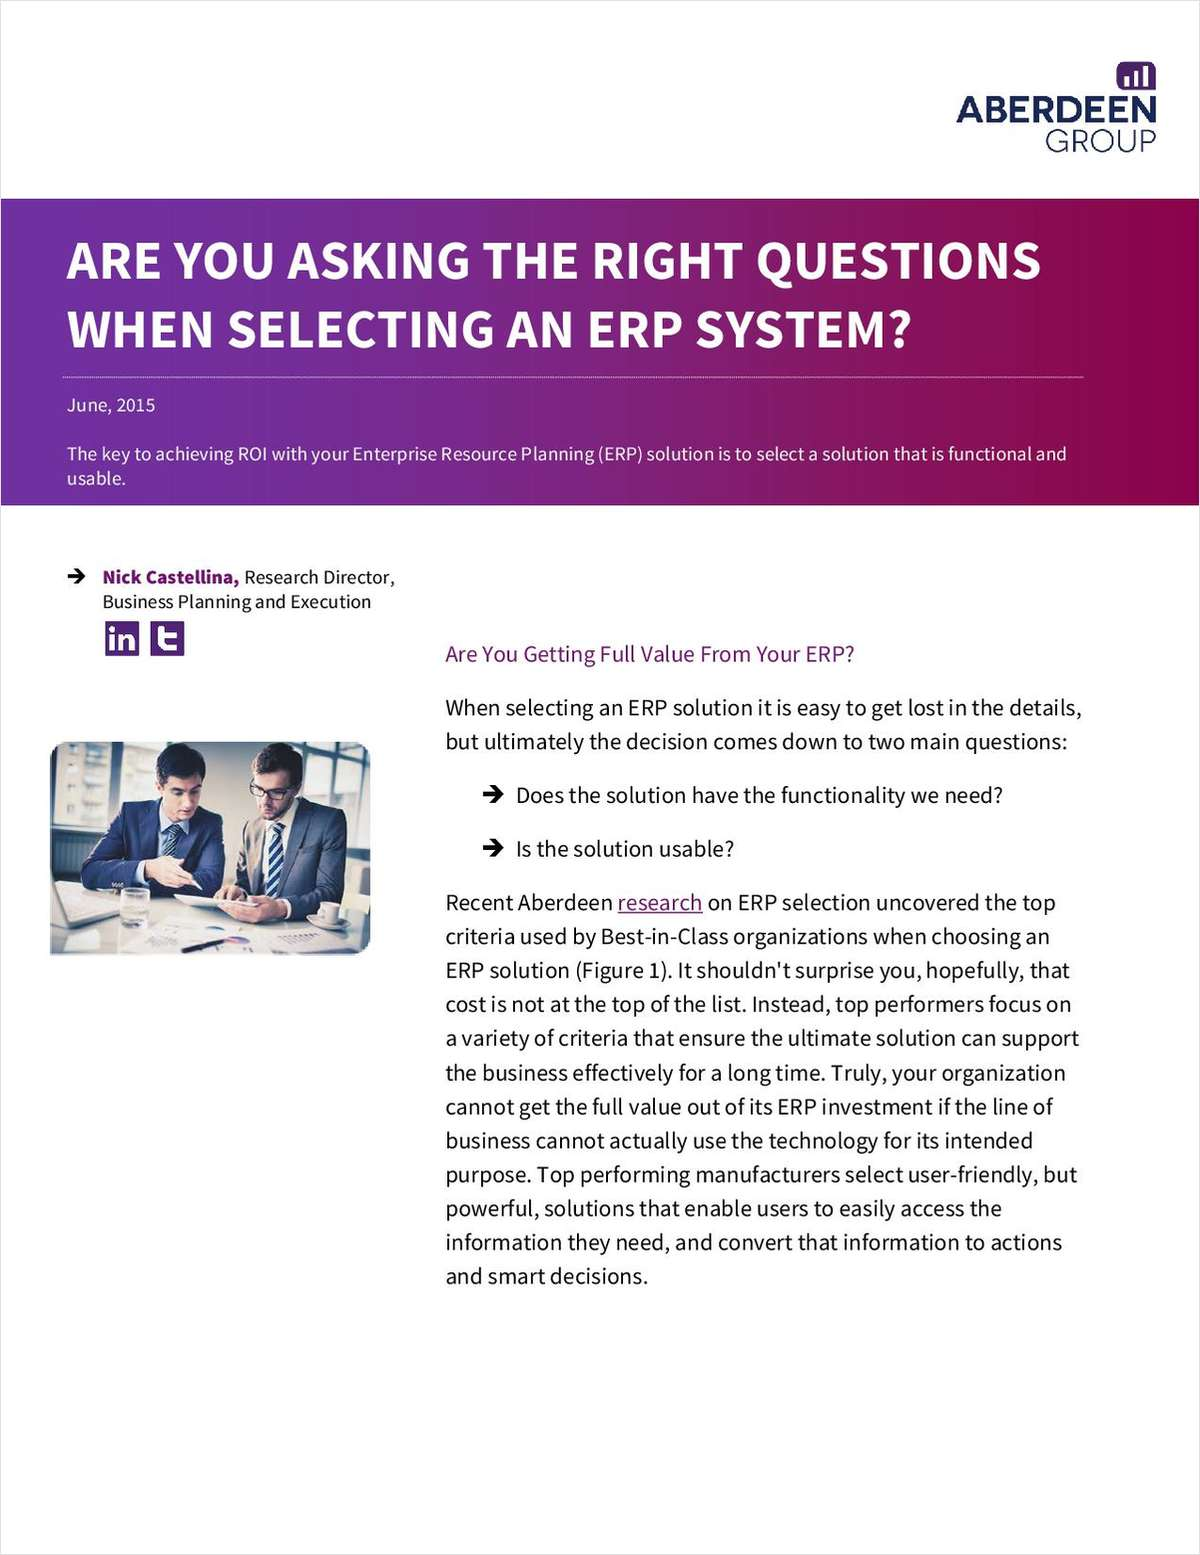 Are You Asking the Right Questions When Selecting an ERP System?